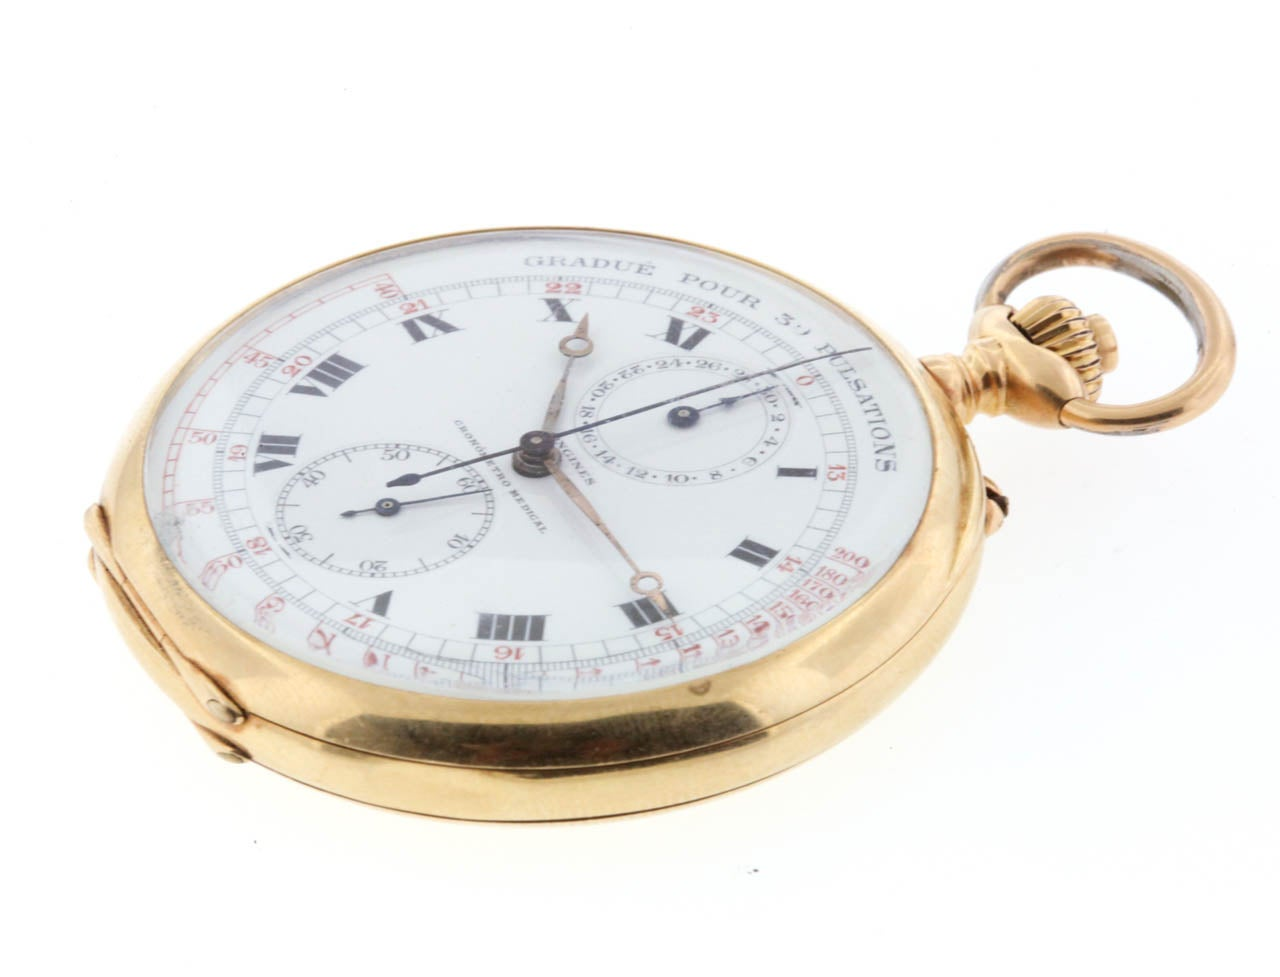 longines yellow gold open chronograph pocket